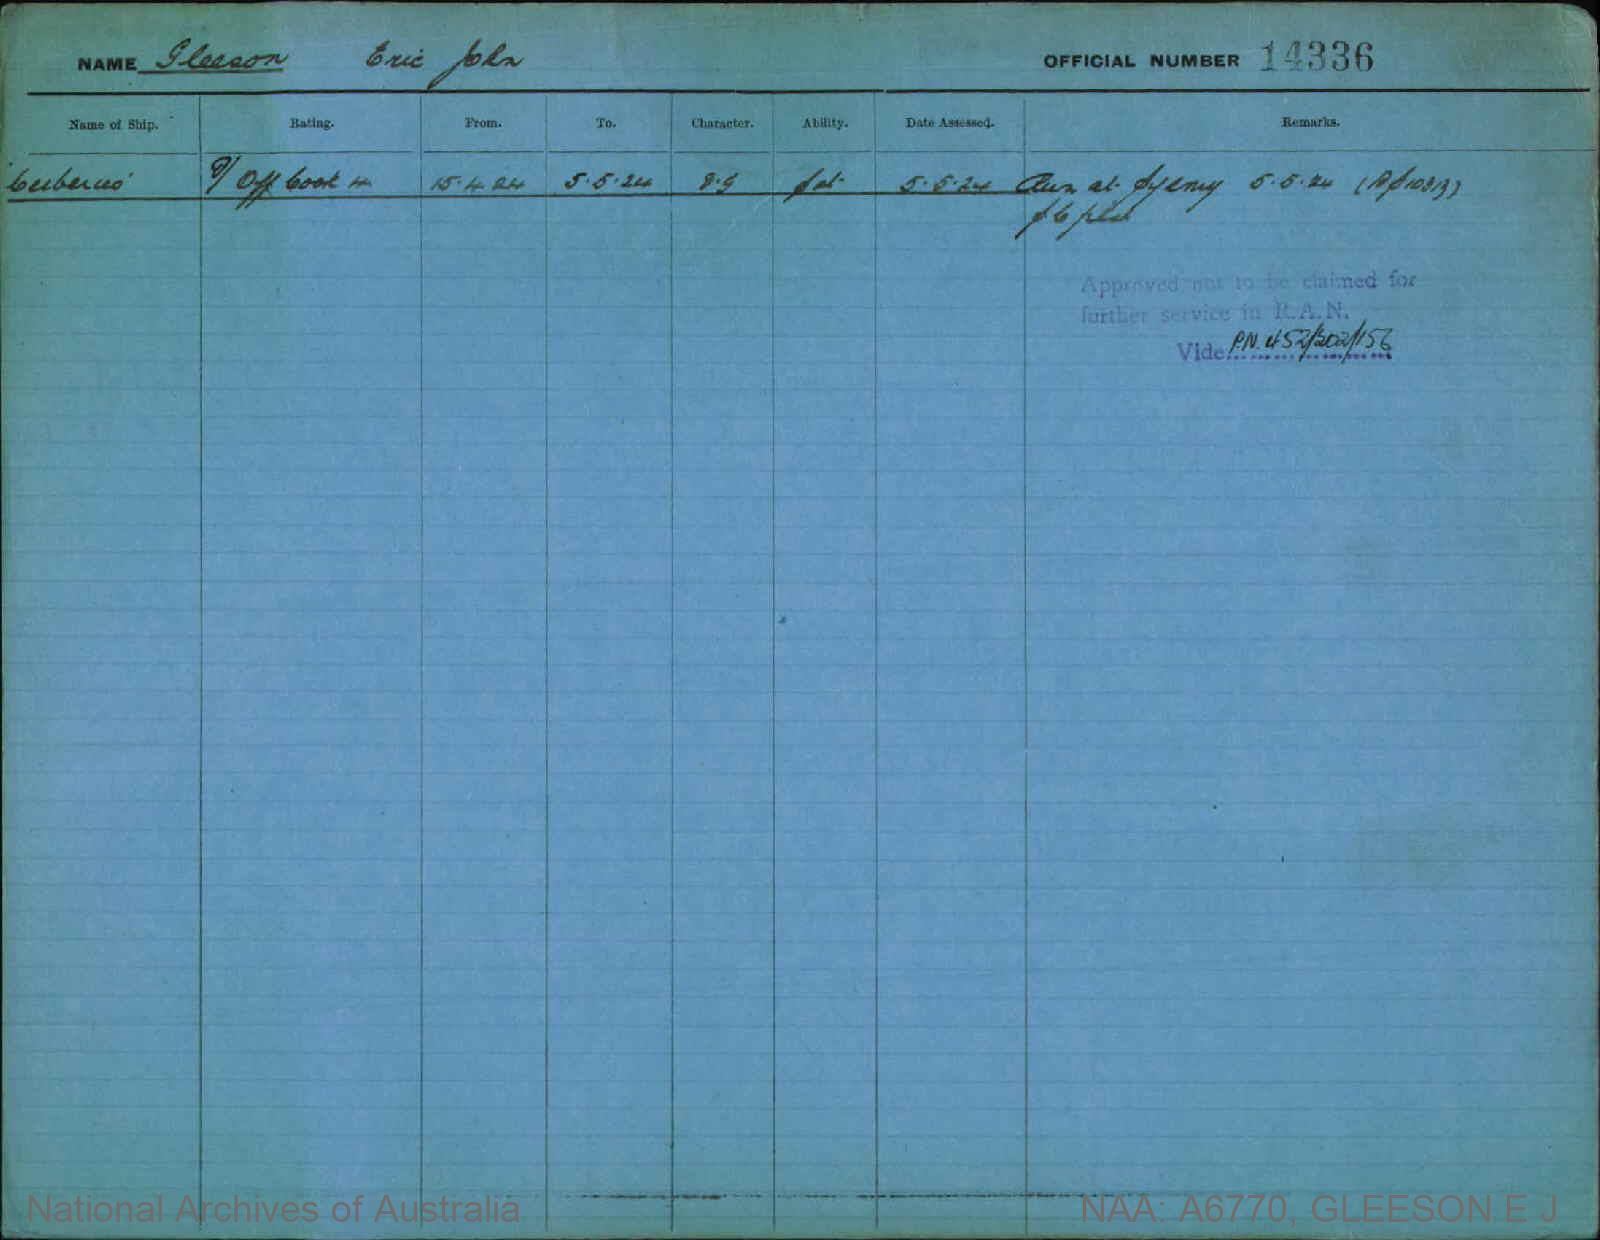 GLEESON ERIC JOHN : Service Number - 14336 : Date of birth - 29 Feb 1904 : Place of birth - RICHMOND VIC : Place of enlistment - MELBOURNE : Next of Kin - THOMPSON MAY